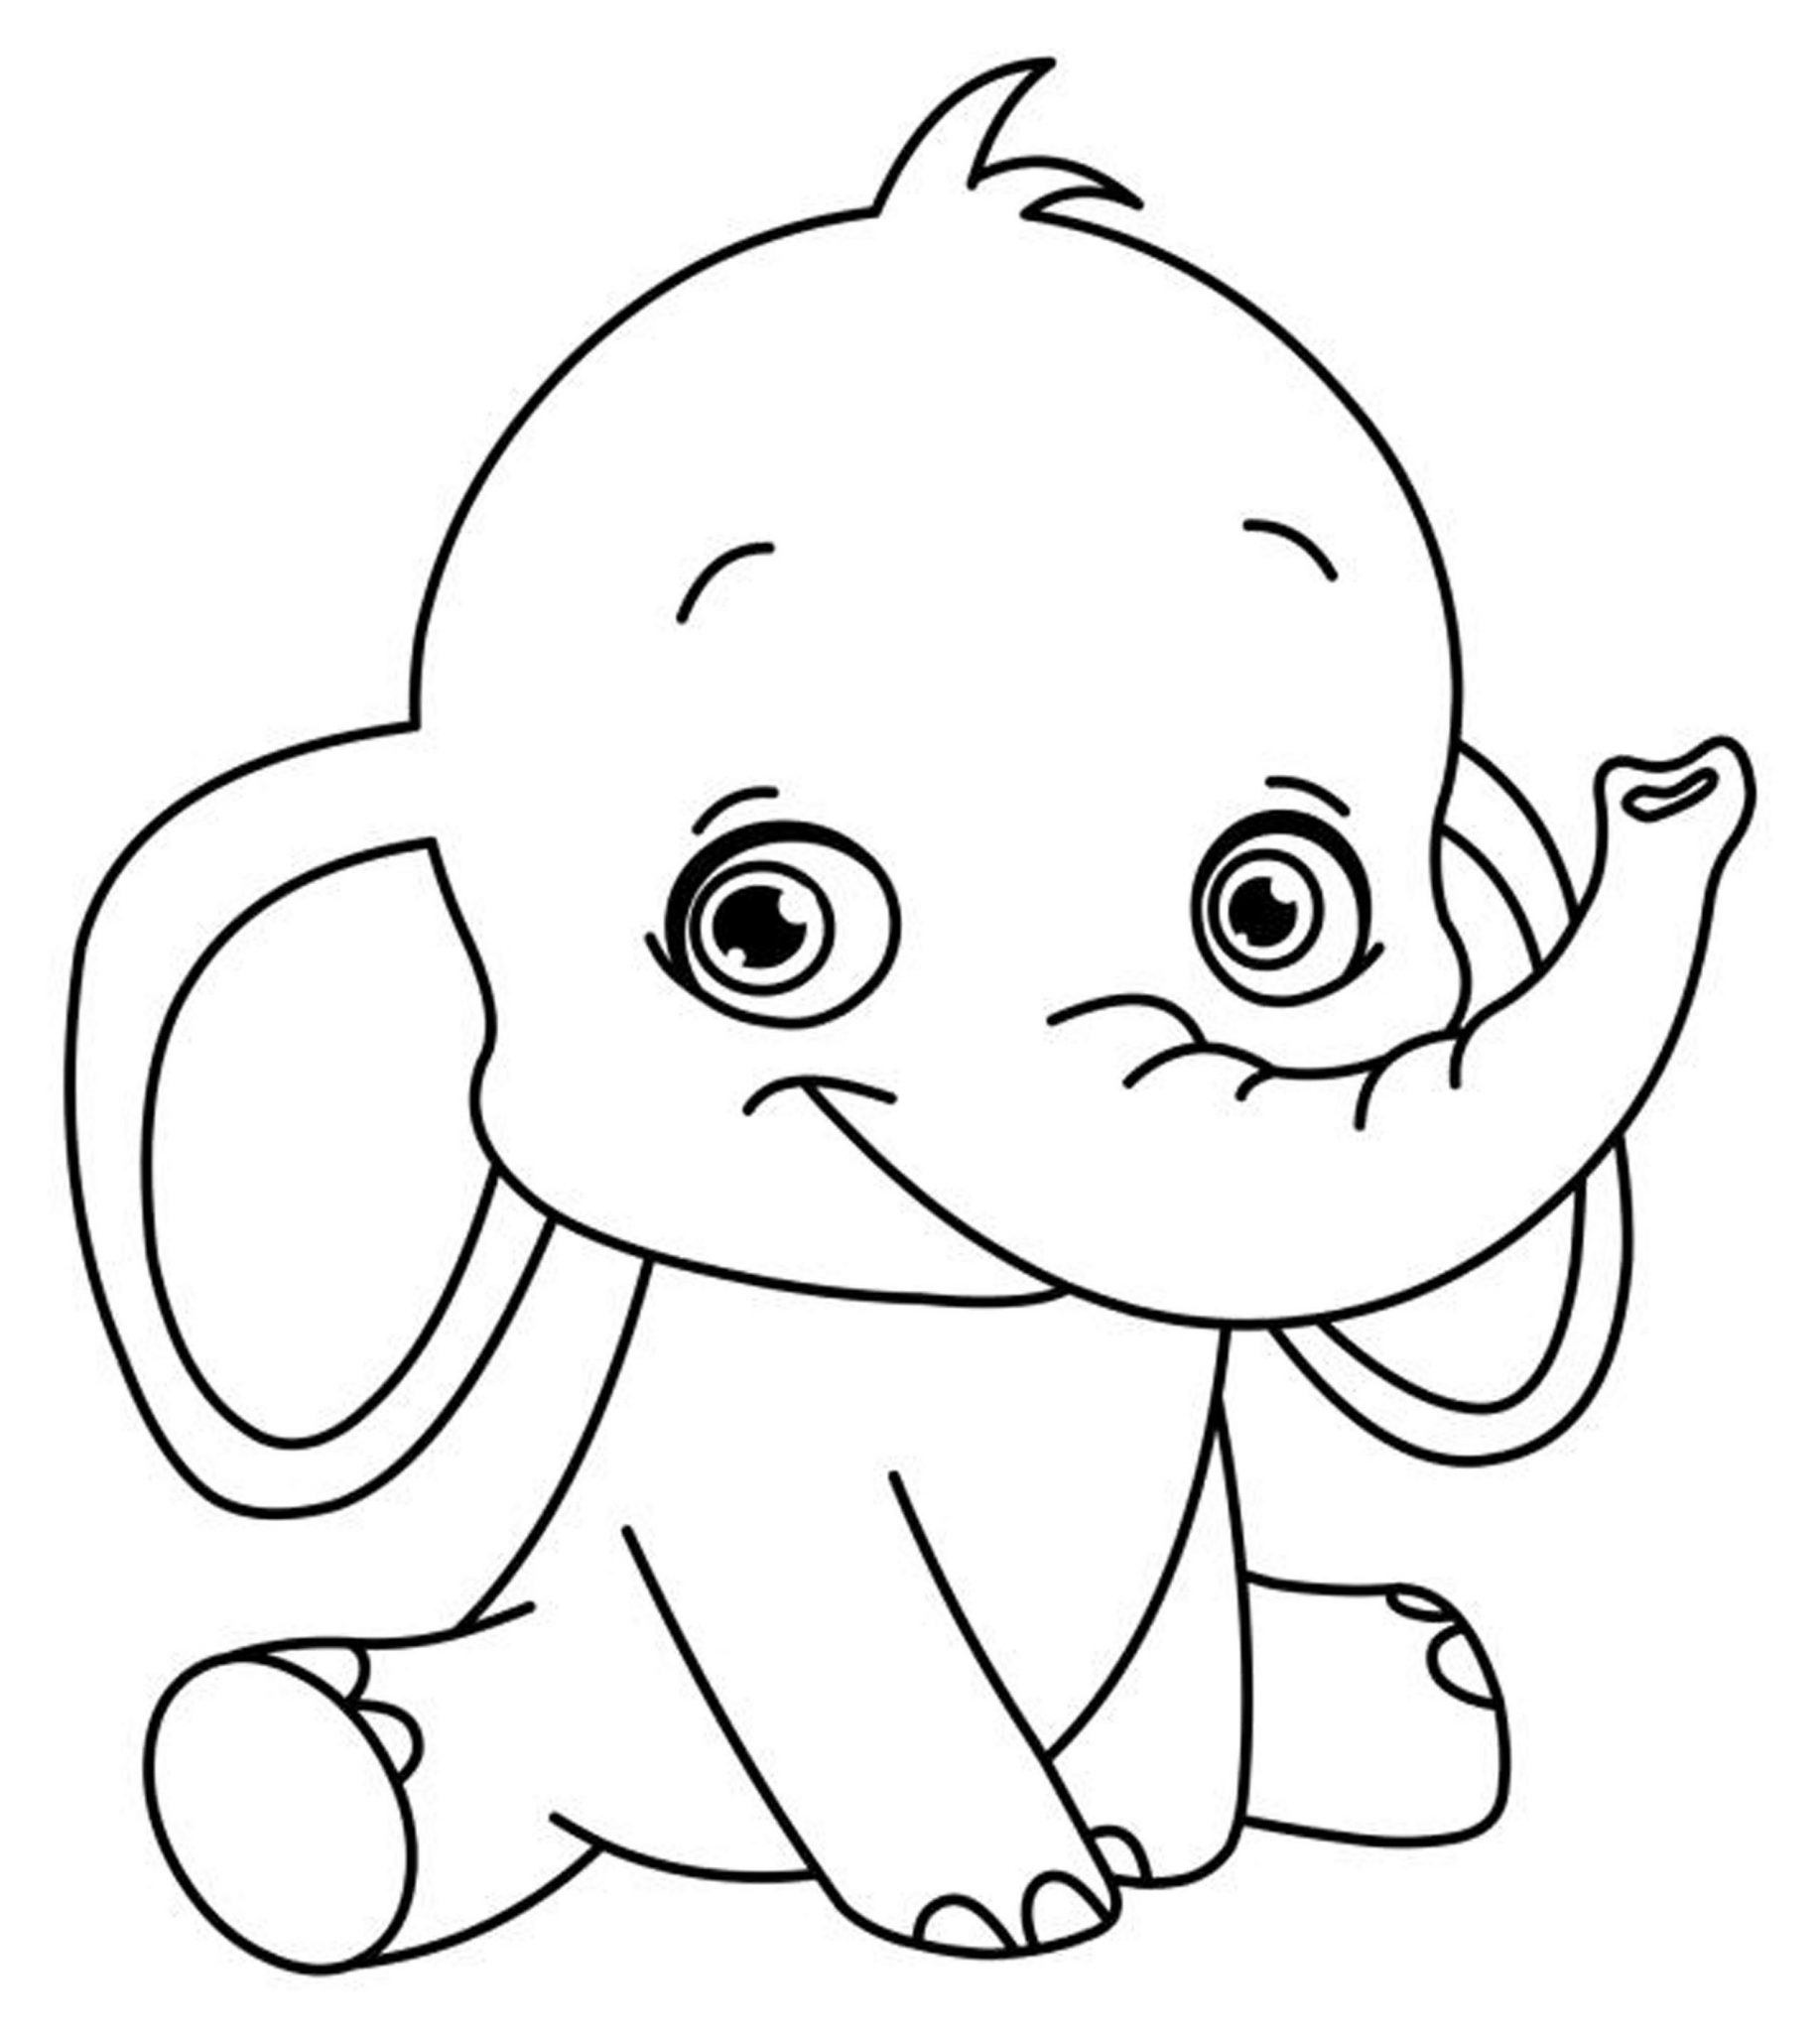 disney color pages coloring pages christmas disney gtgt disney coloring pages color pages disney